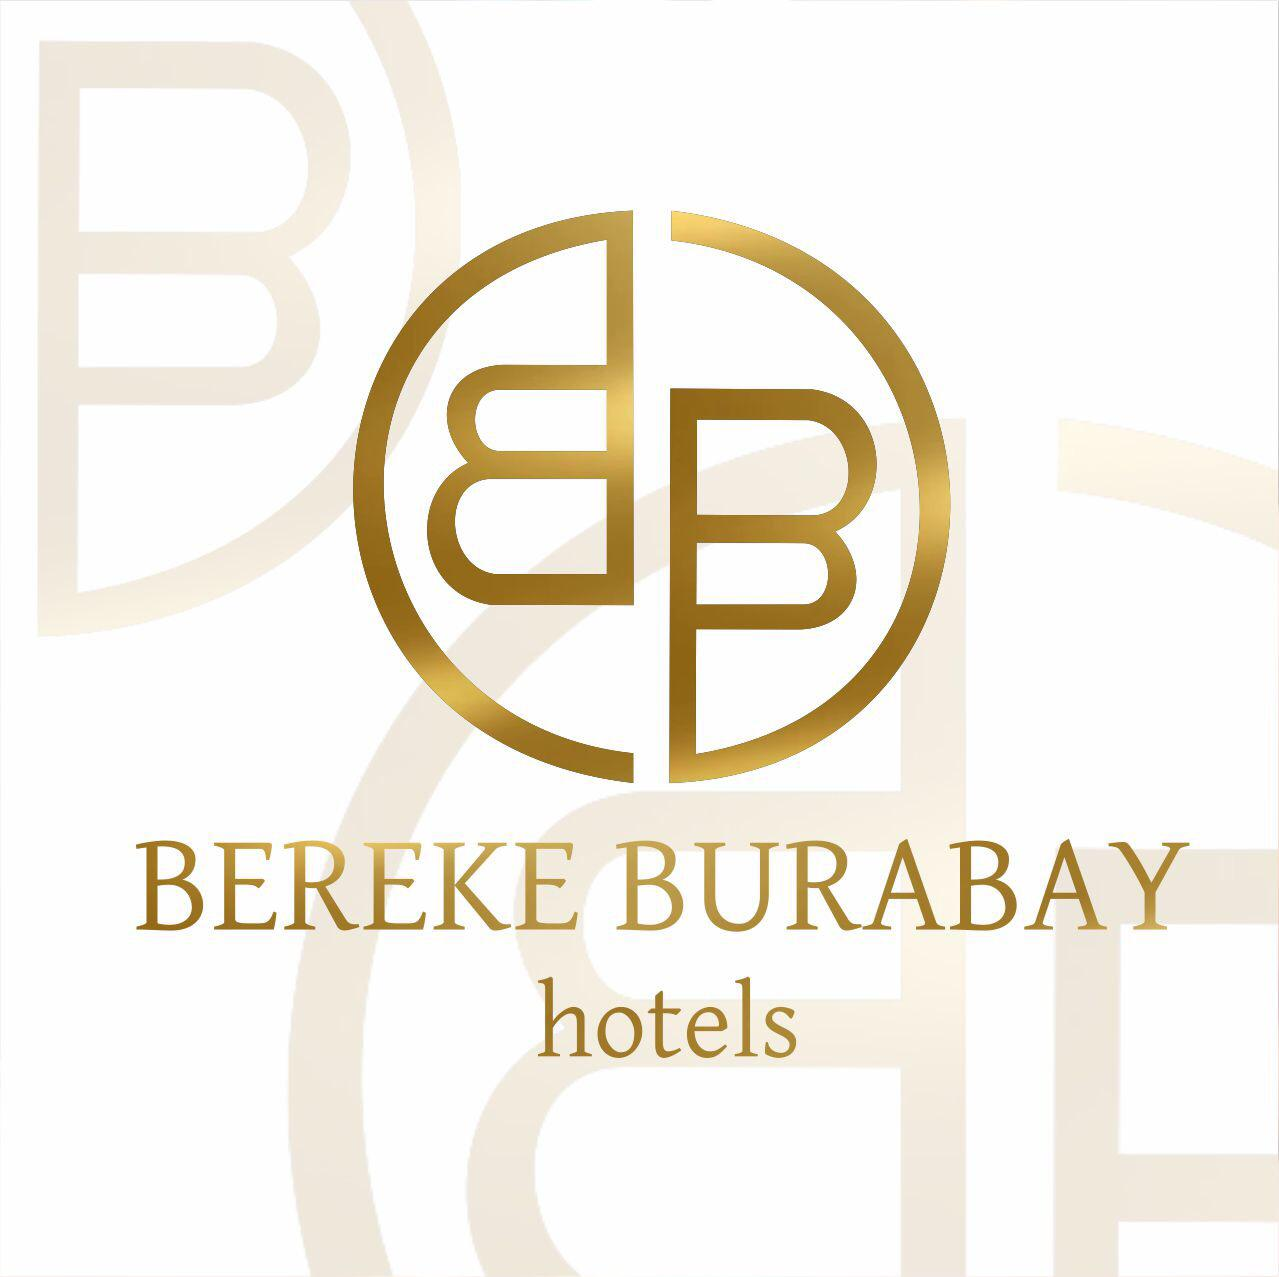 The network of hotels «Bereke-Burabay»